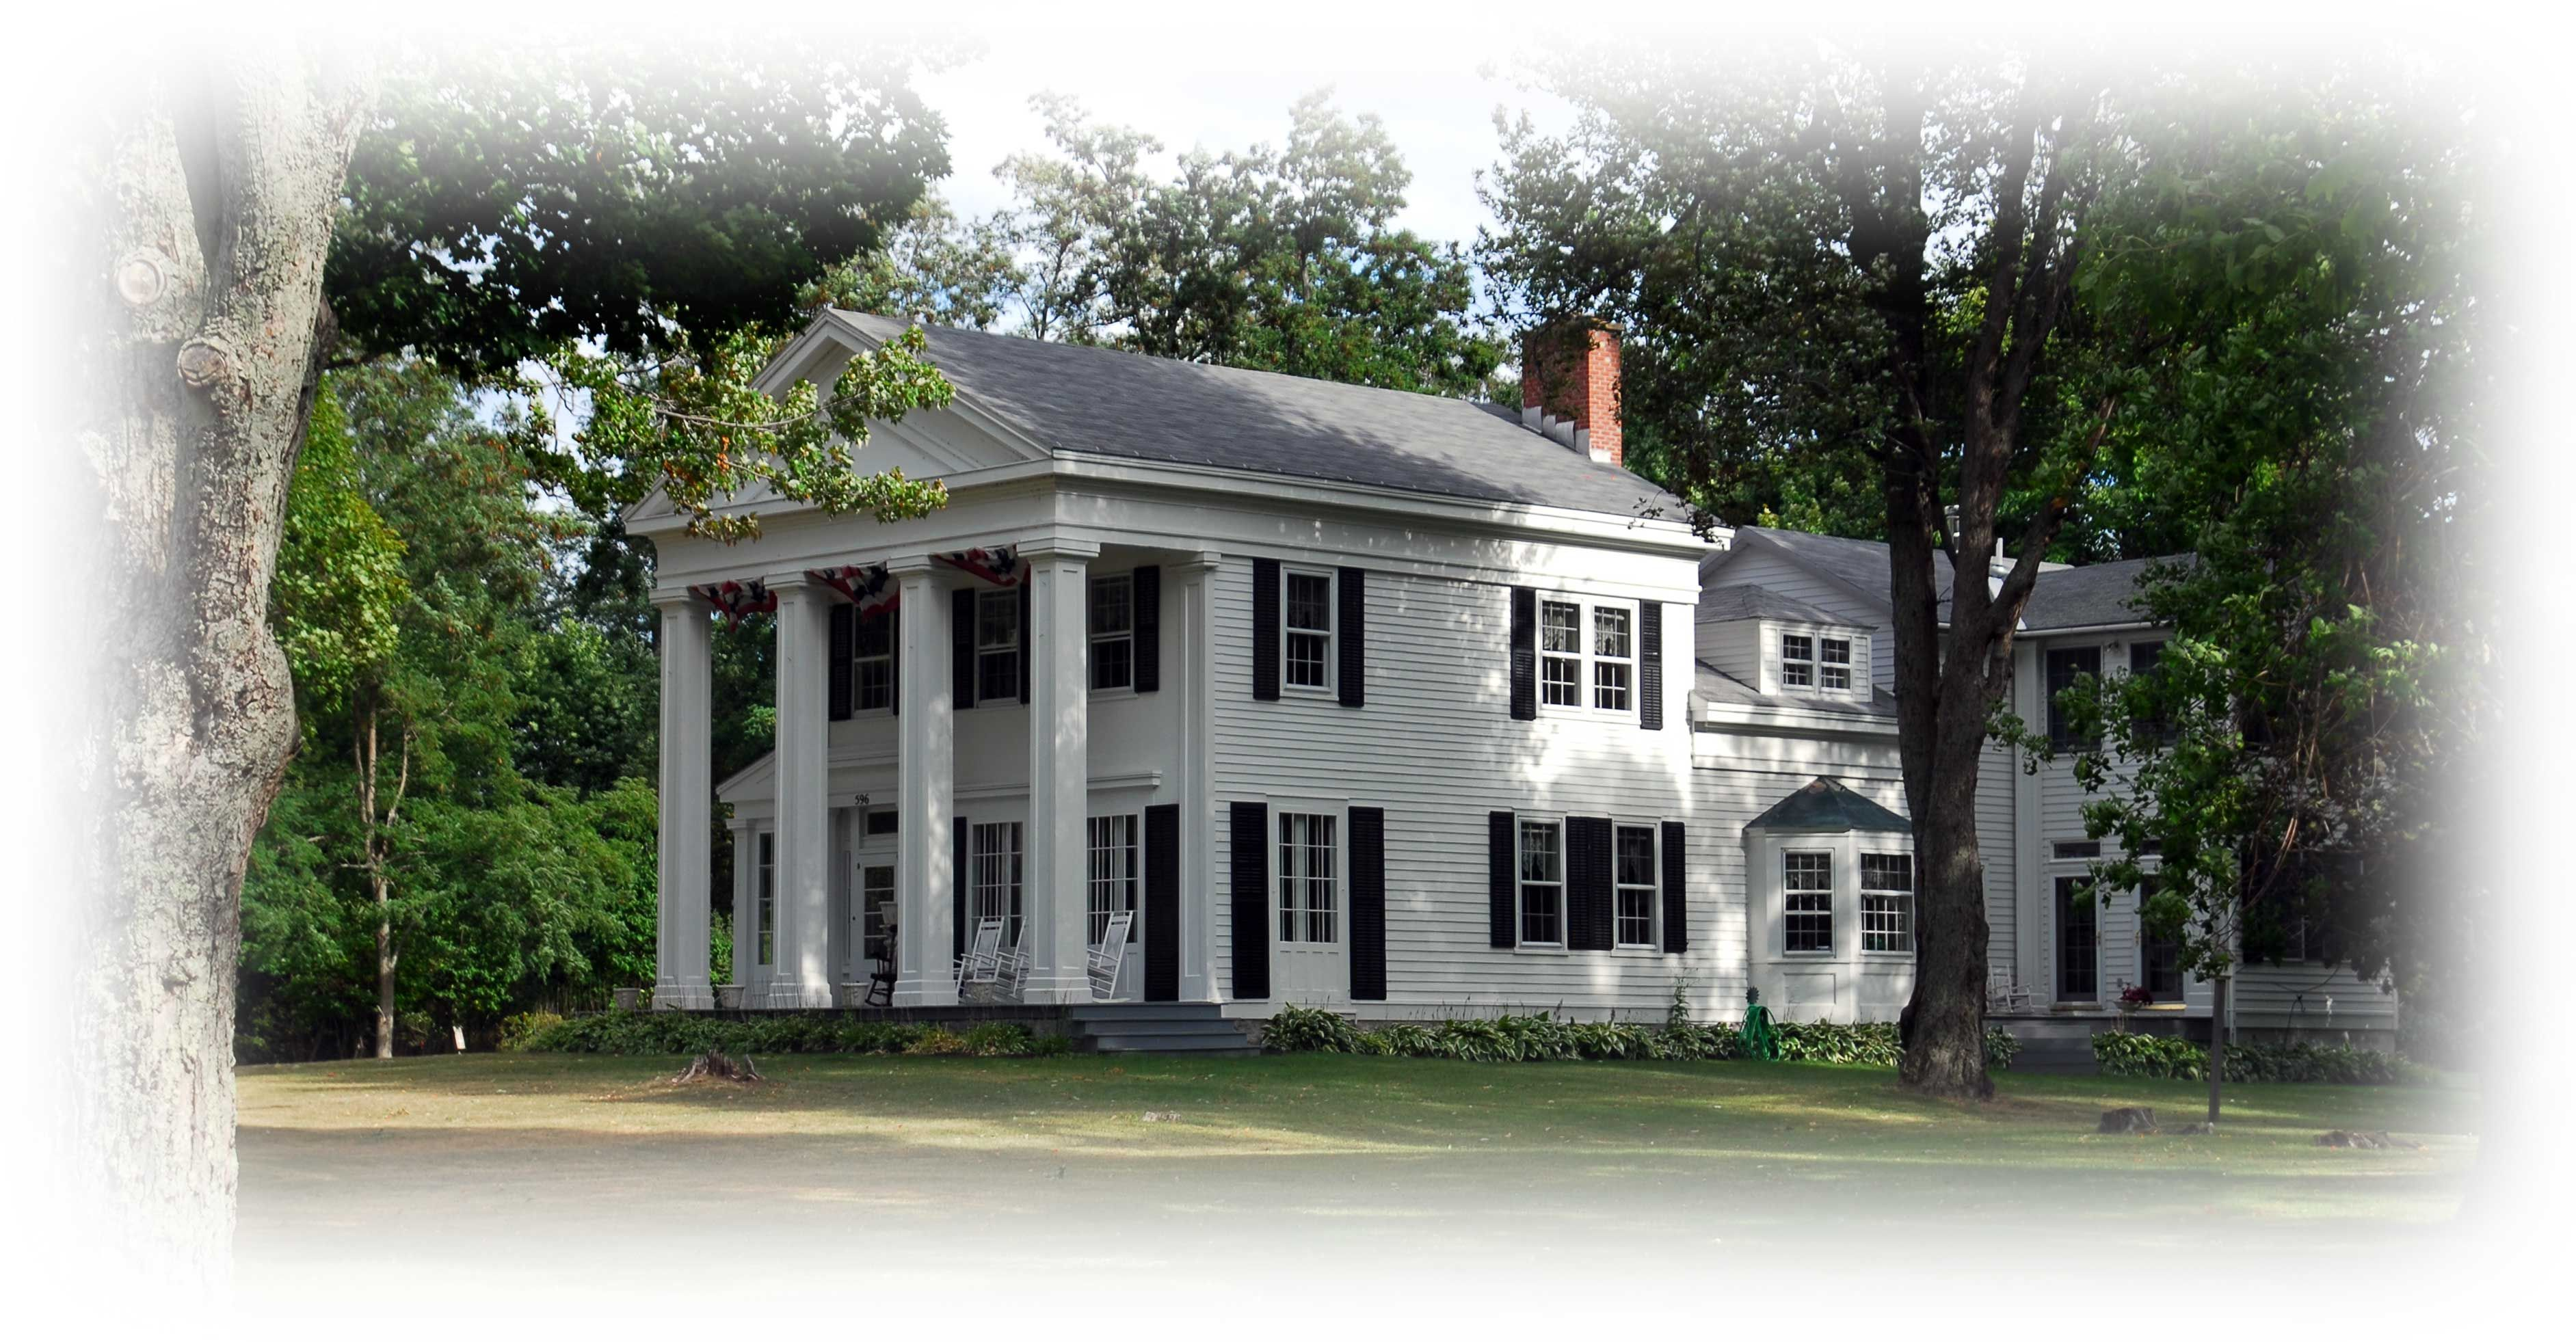 Maple Grove Bed and Breakfast, Cape Vincent, NY Bed